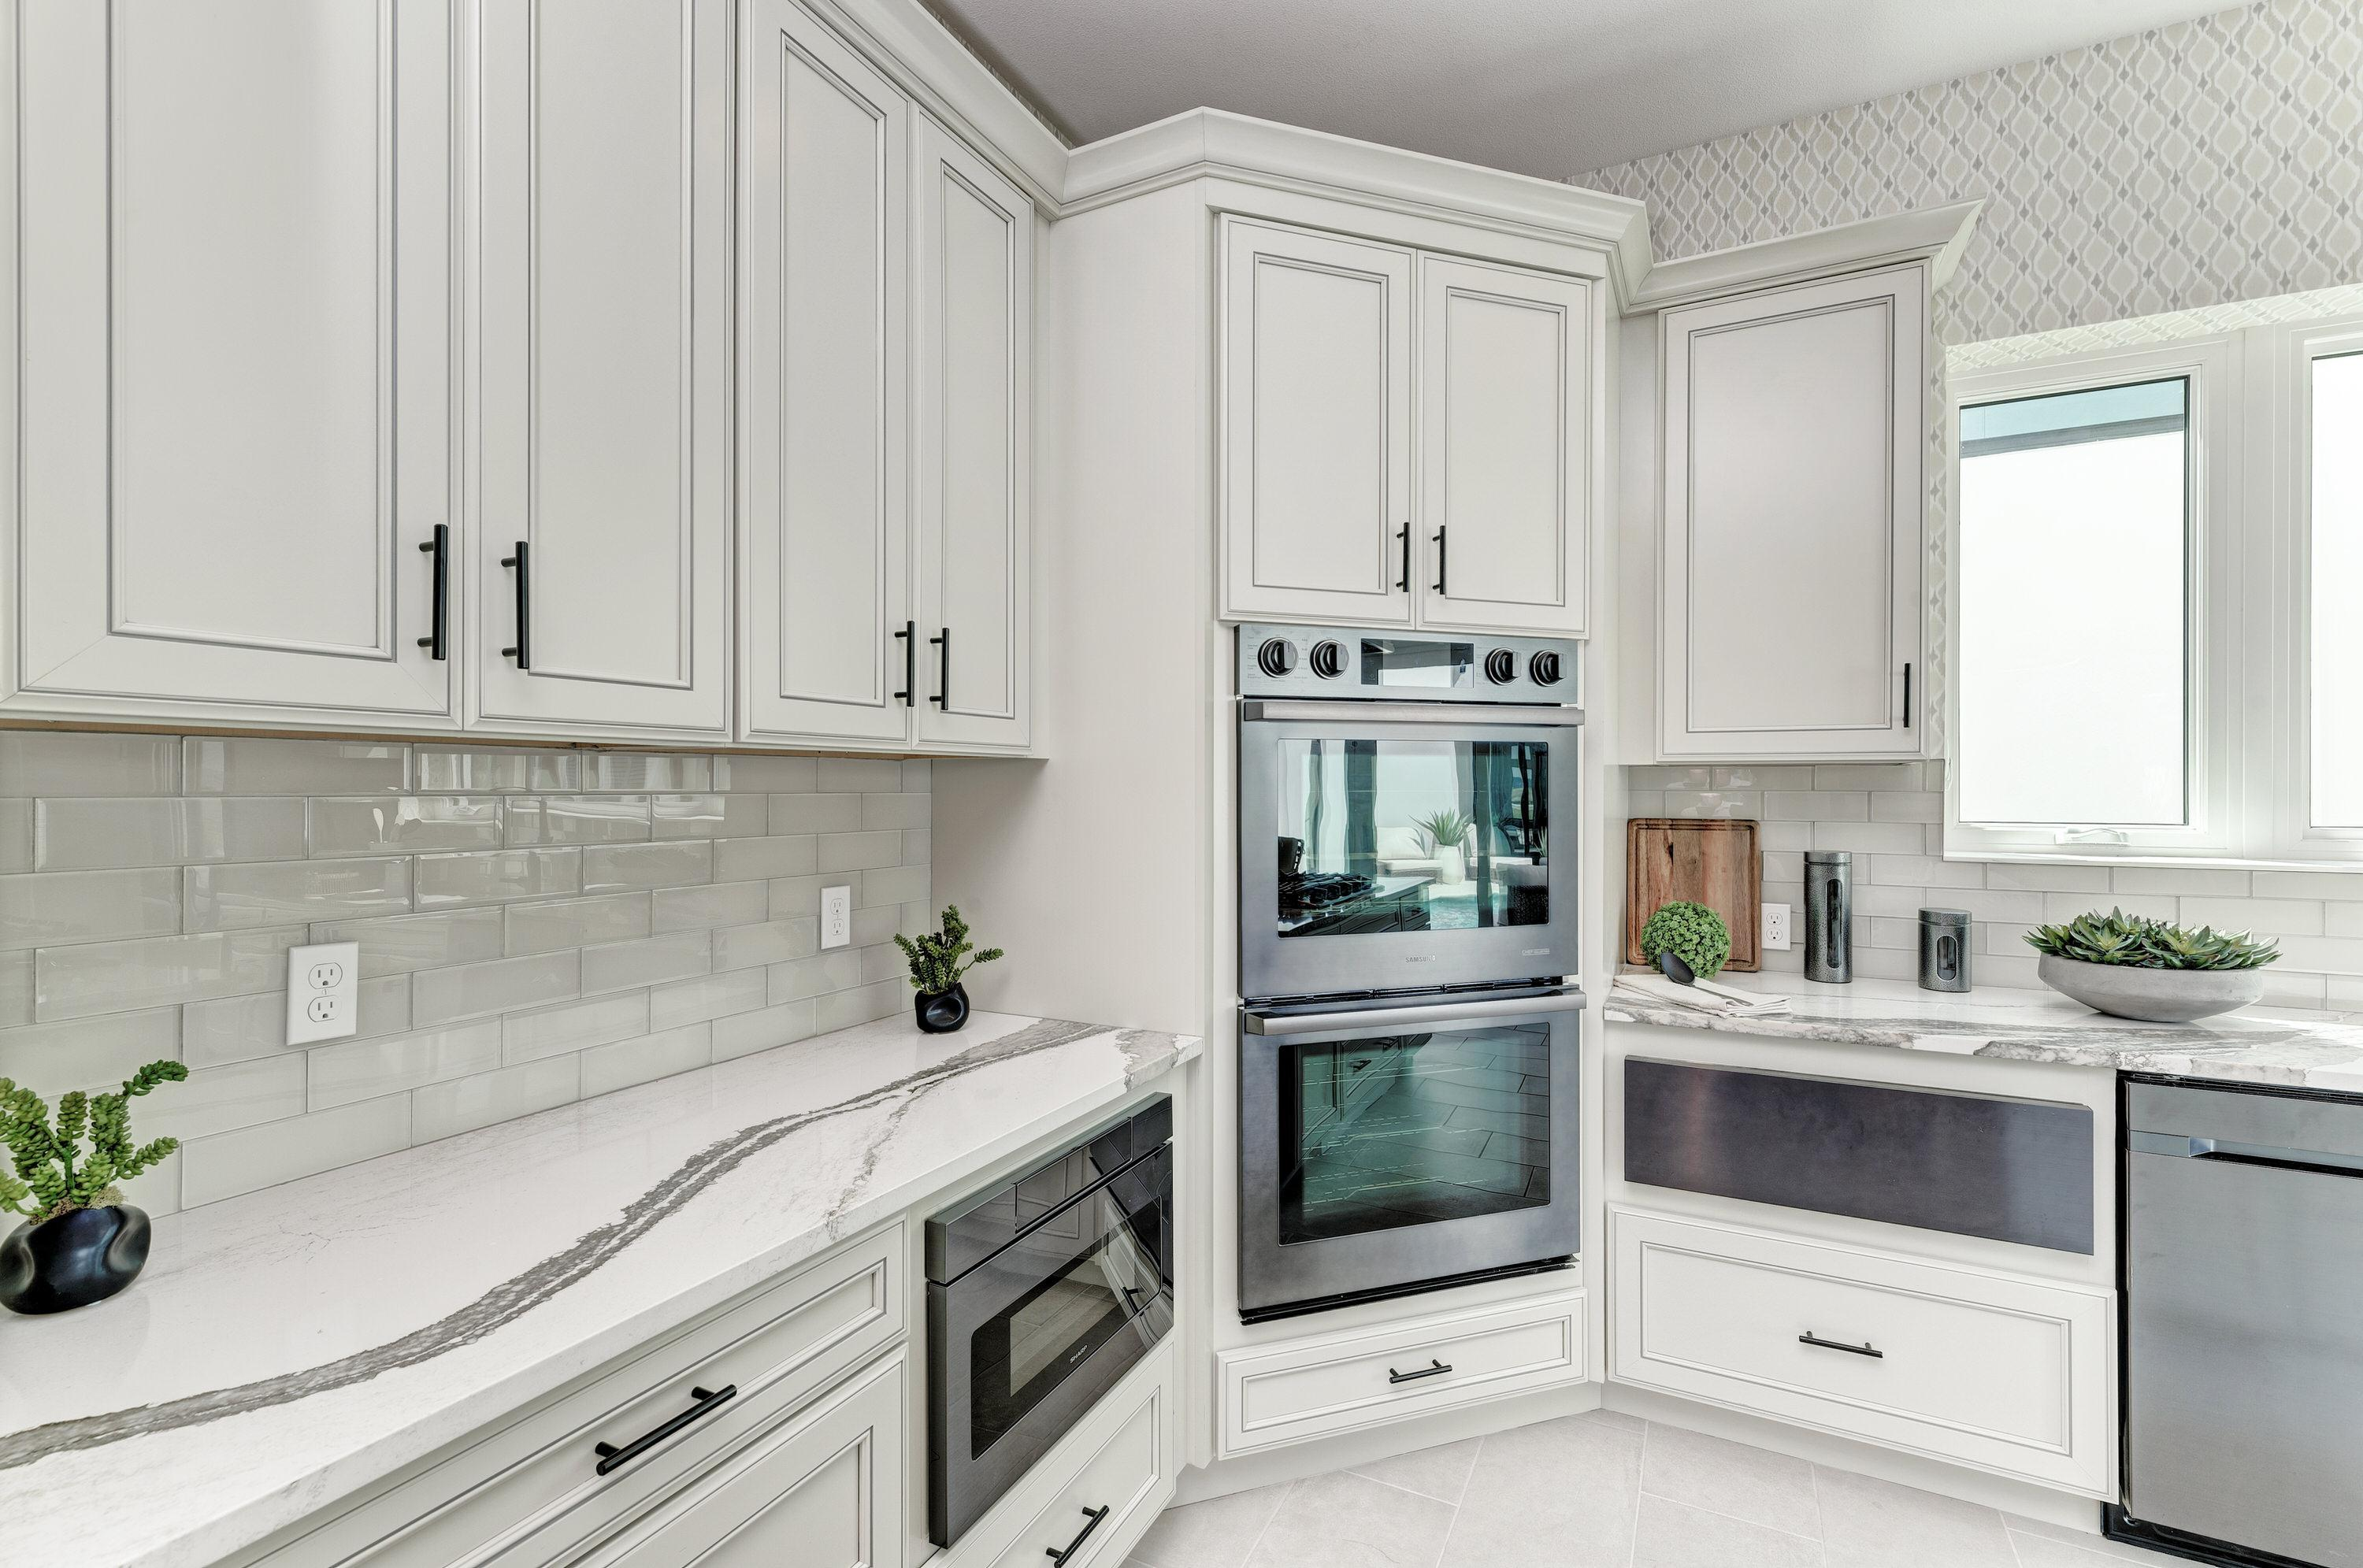 Kitchen featured in the Salt Meadow By Medallion Home in Sarasota-Bradenton, FL